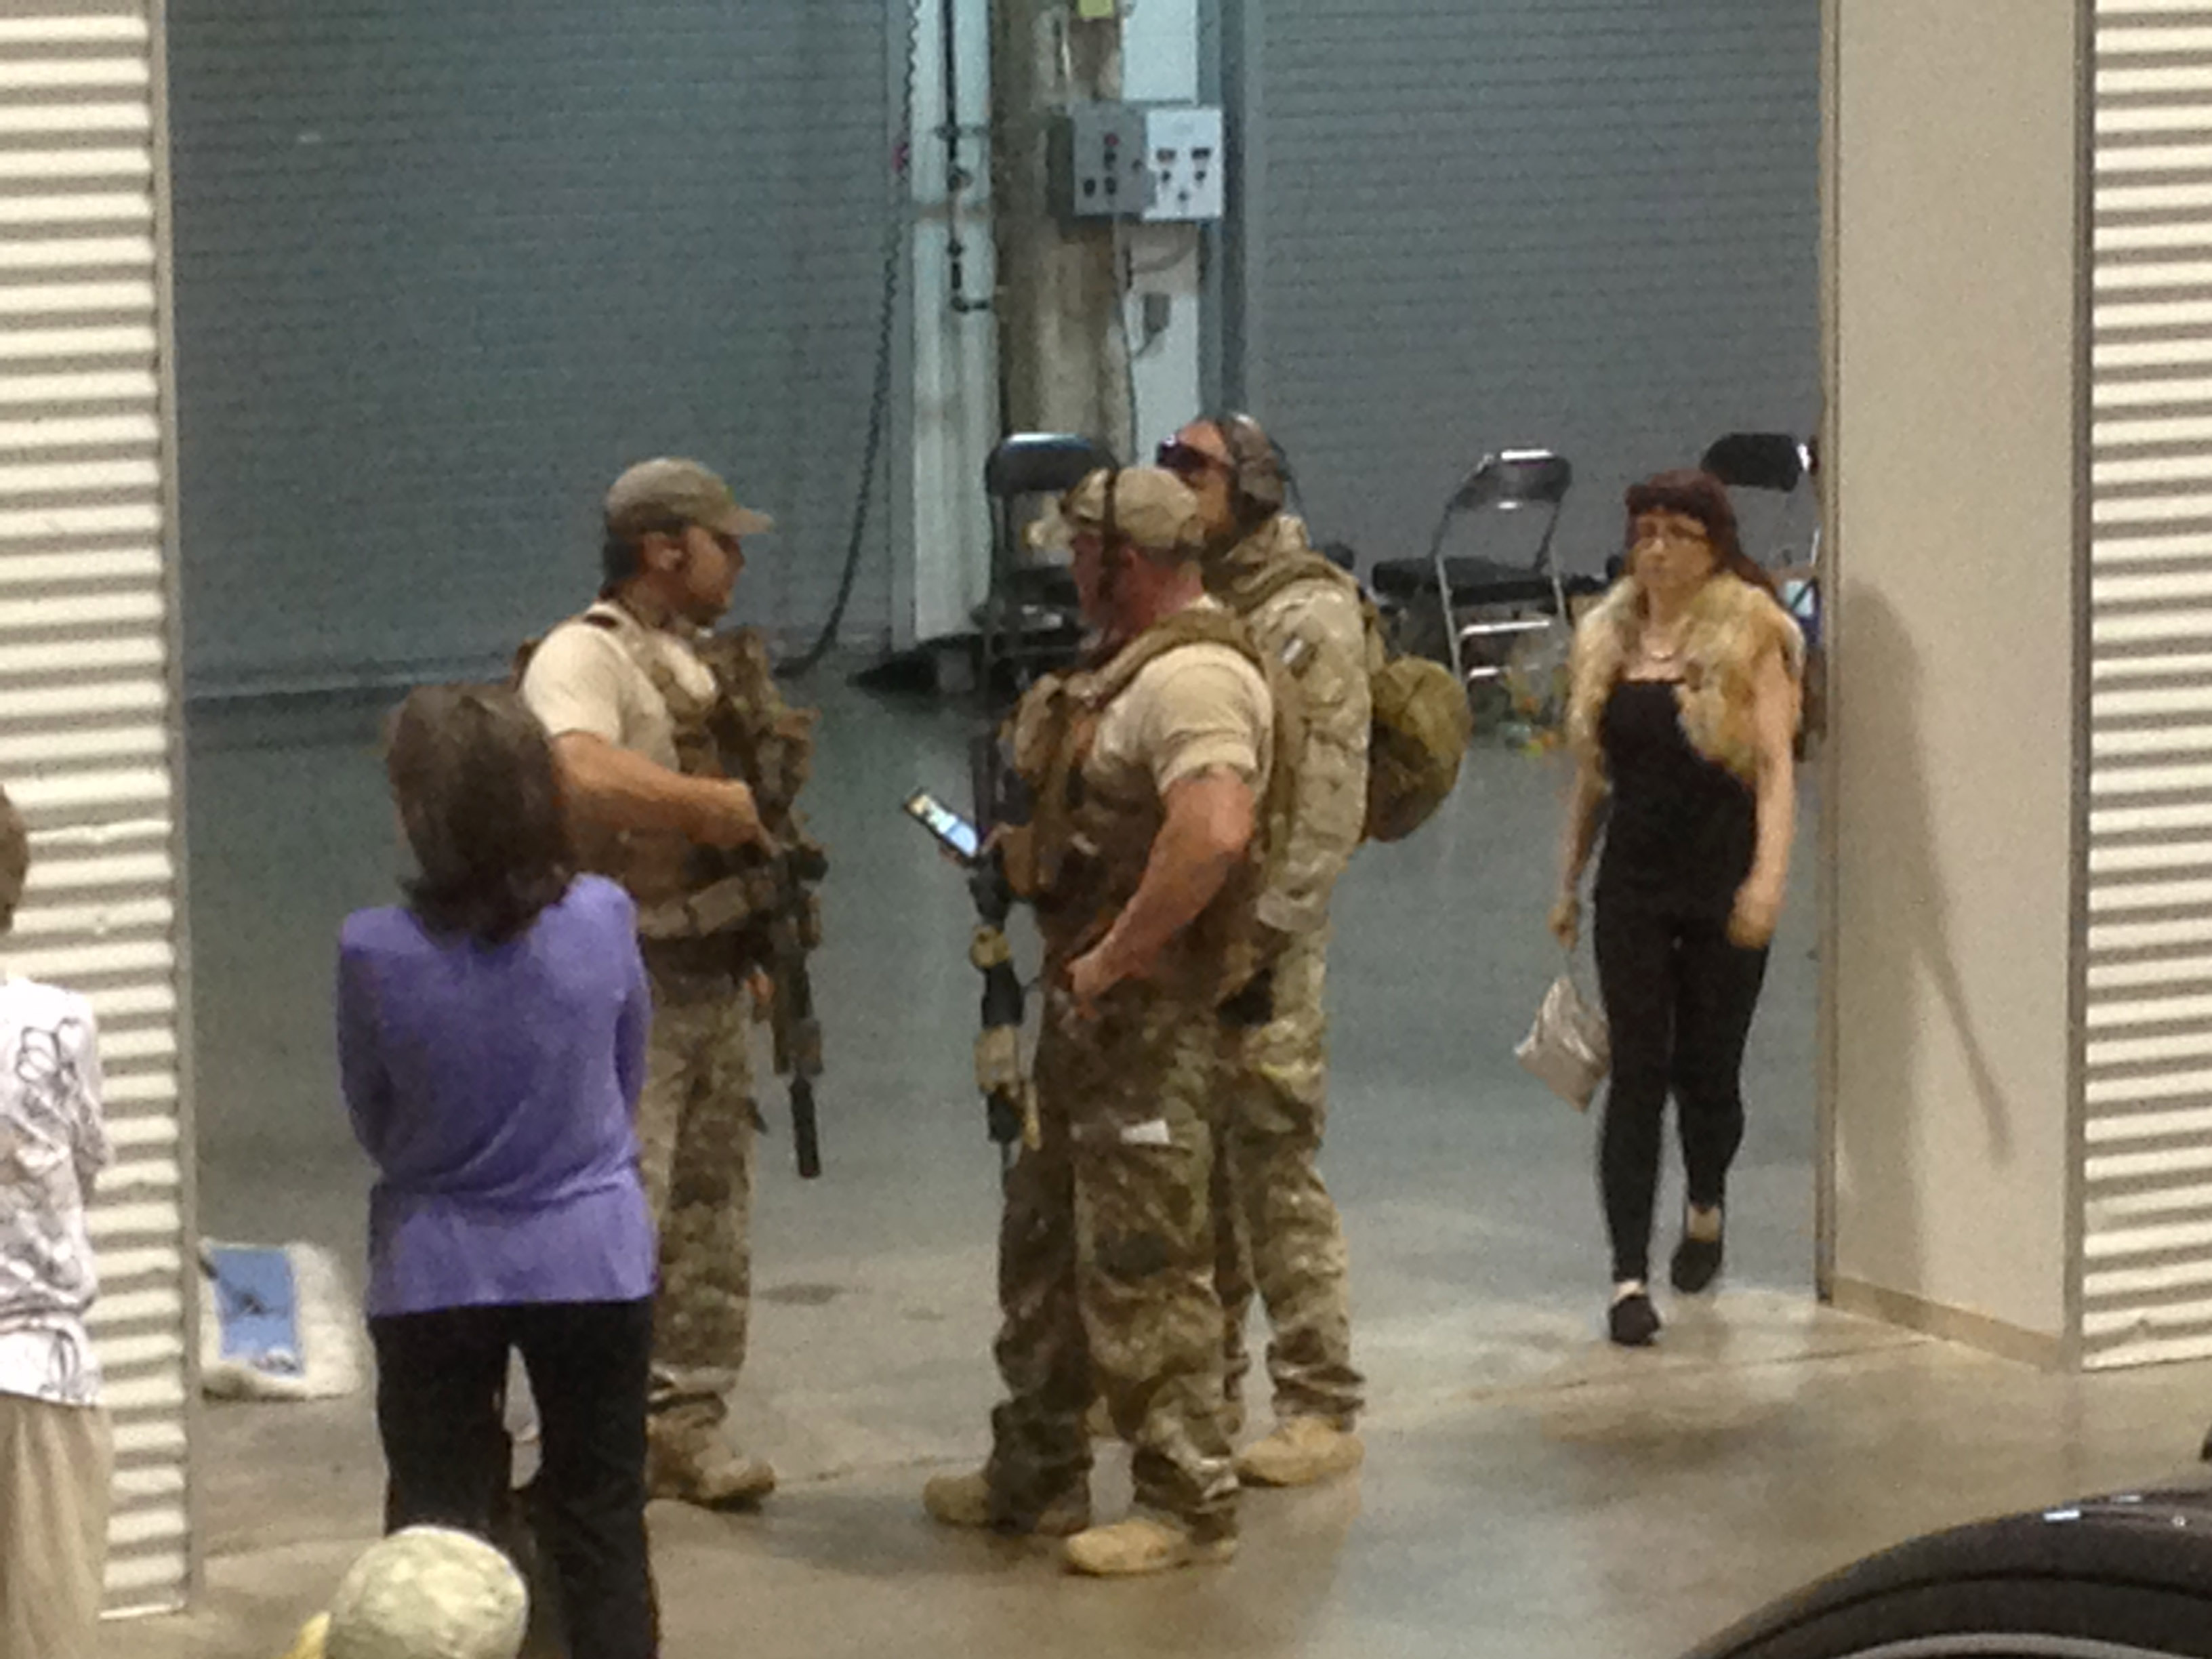 Members of the Garland Police Department stand inside the Curtis Culwell Center, Sunday, May 3, 2015, in Garland, Texas. A contest for cartoons depictions of the Prophet Muhammad in the Dallas suburb is on lockdown Sunday after authorities reported a shooting outside the building. (AP Photo Nomaan Merchant)